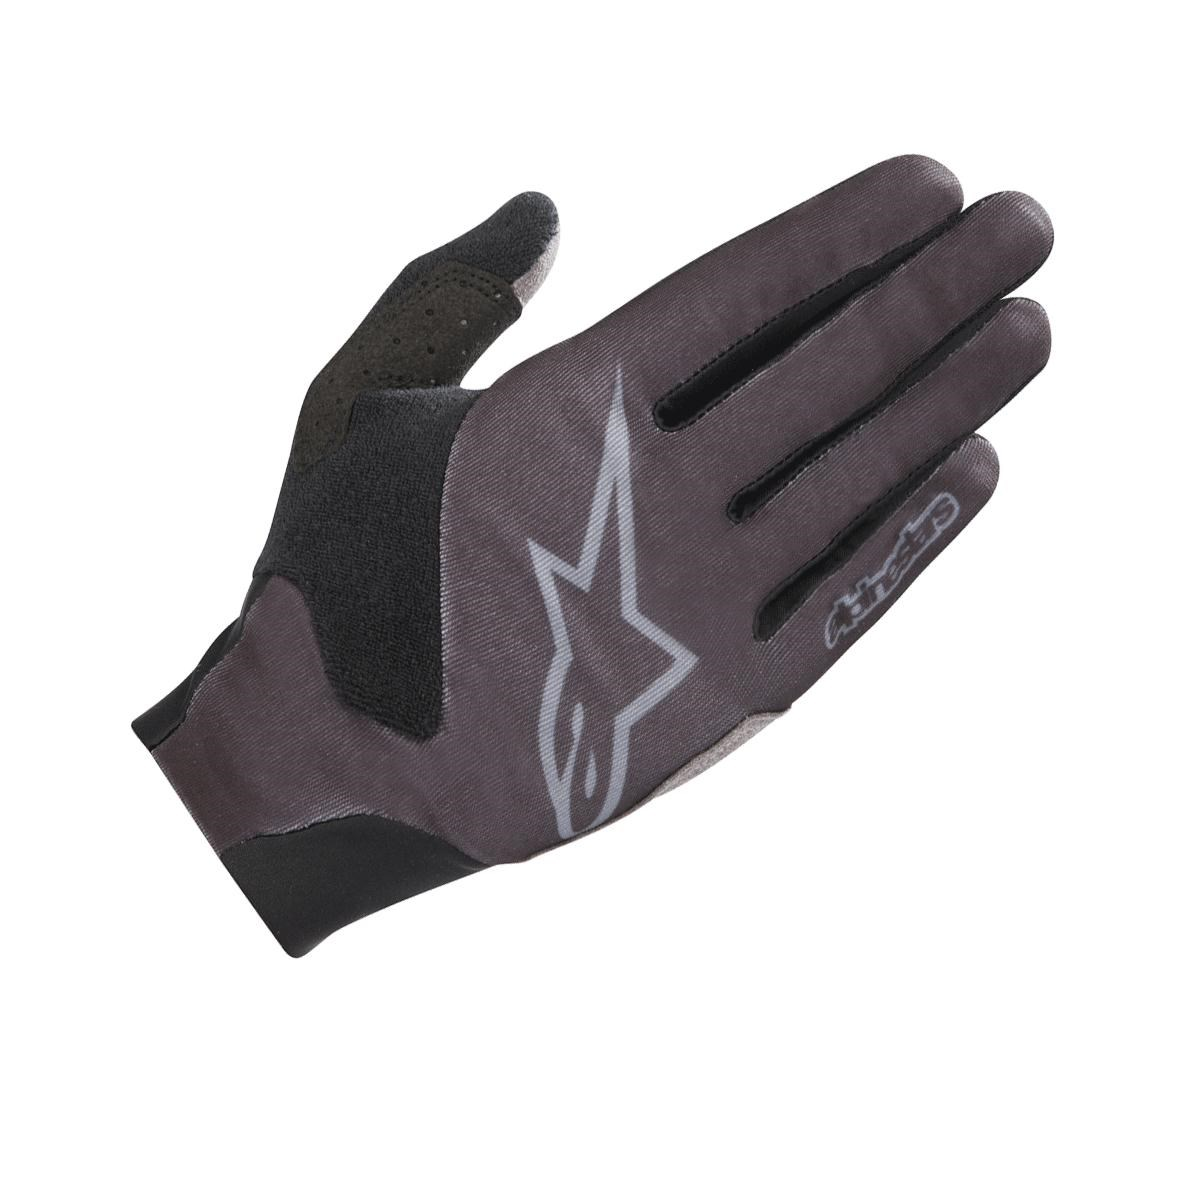 Alpinestars Aero V3 Glove Black/Grey